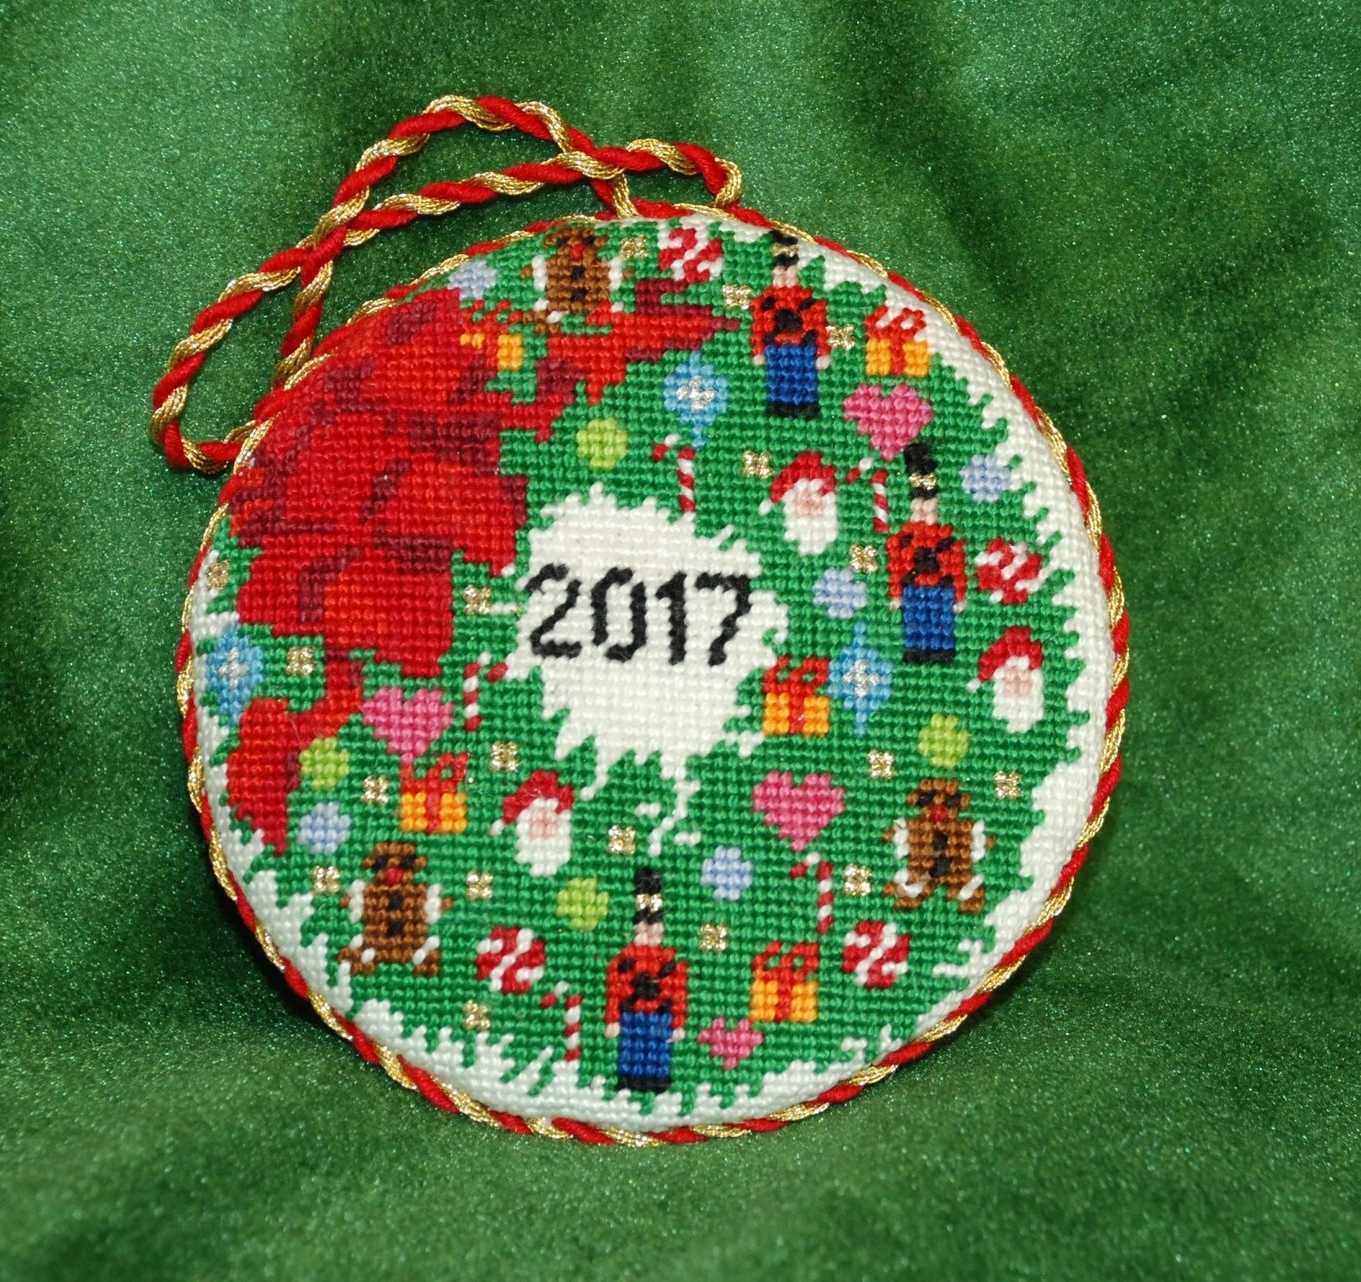 2017 KC Needlepoint Ornament of the Year specially designed for the store. This ornament has regular stitches, but a class was held to use fancy stitches for those who wanted an even more ornate design.